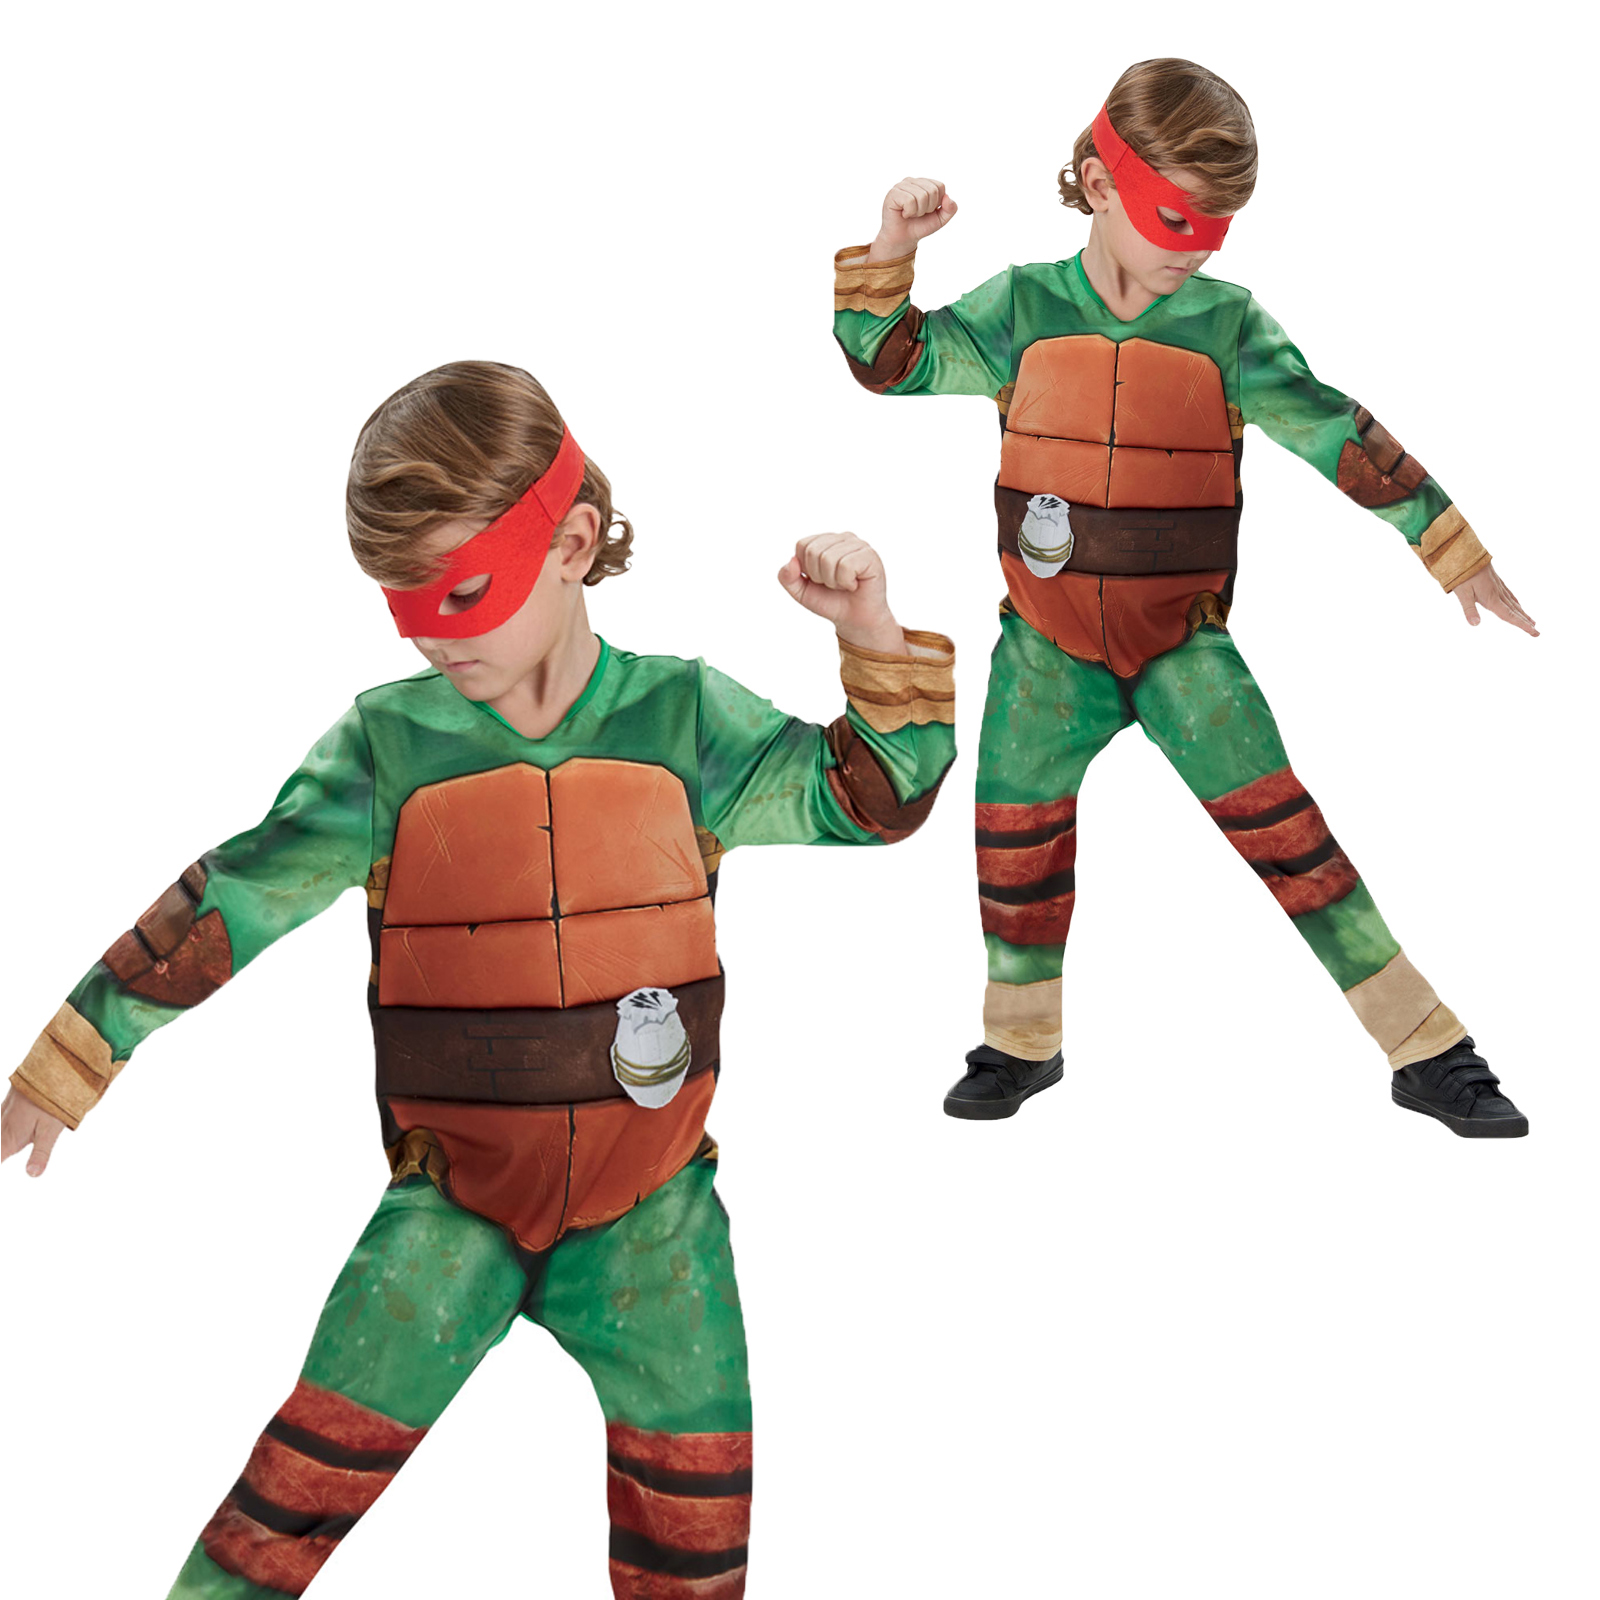 rubies kinder deluxe teenage mutant ninja turtles kost m kleid outfit ebay. Black Bedroom Furniture Sets. Home Design Ideas